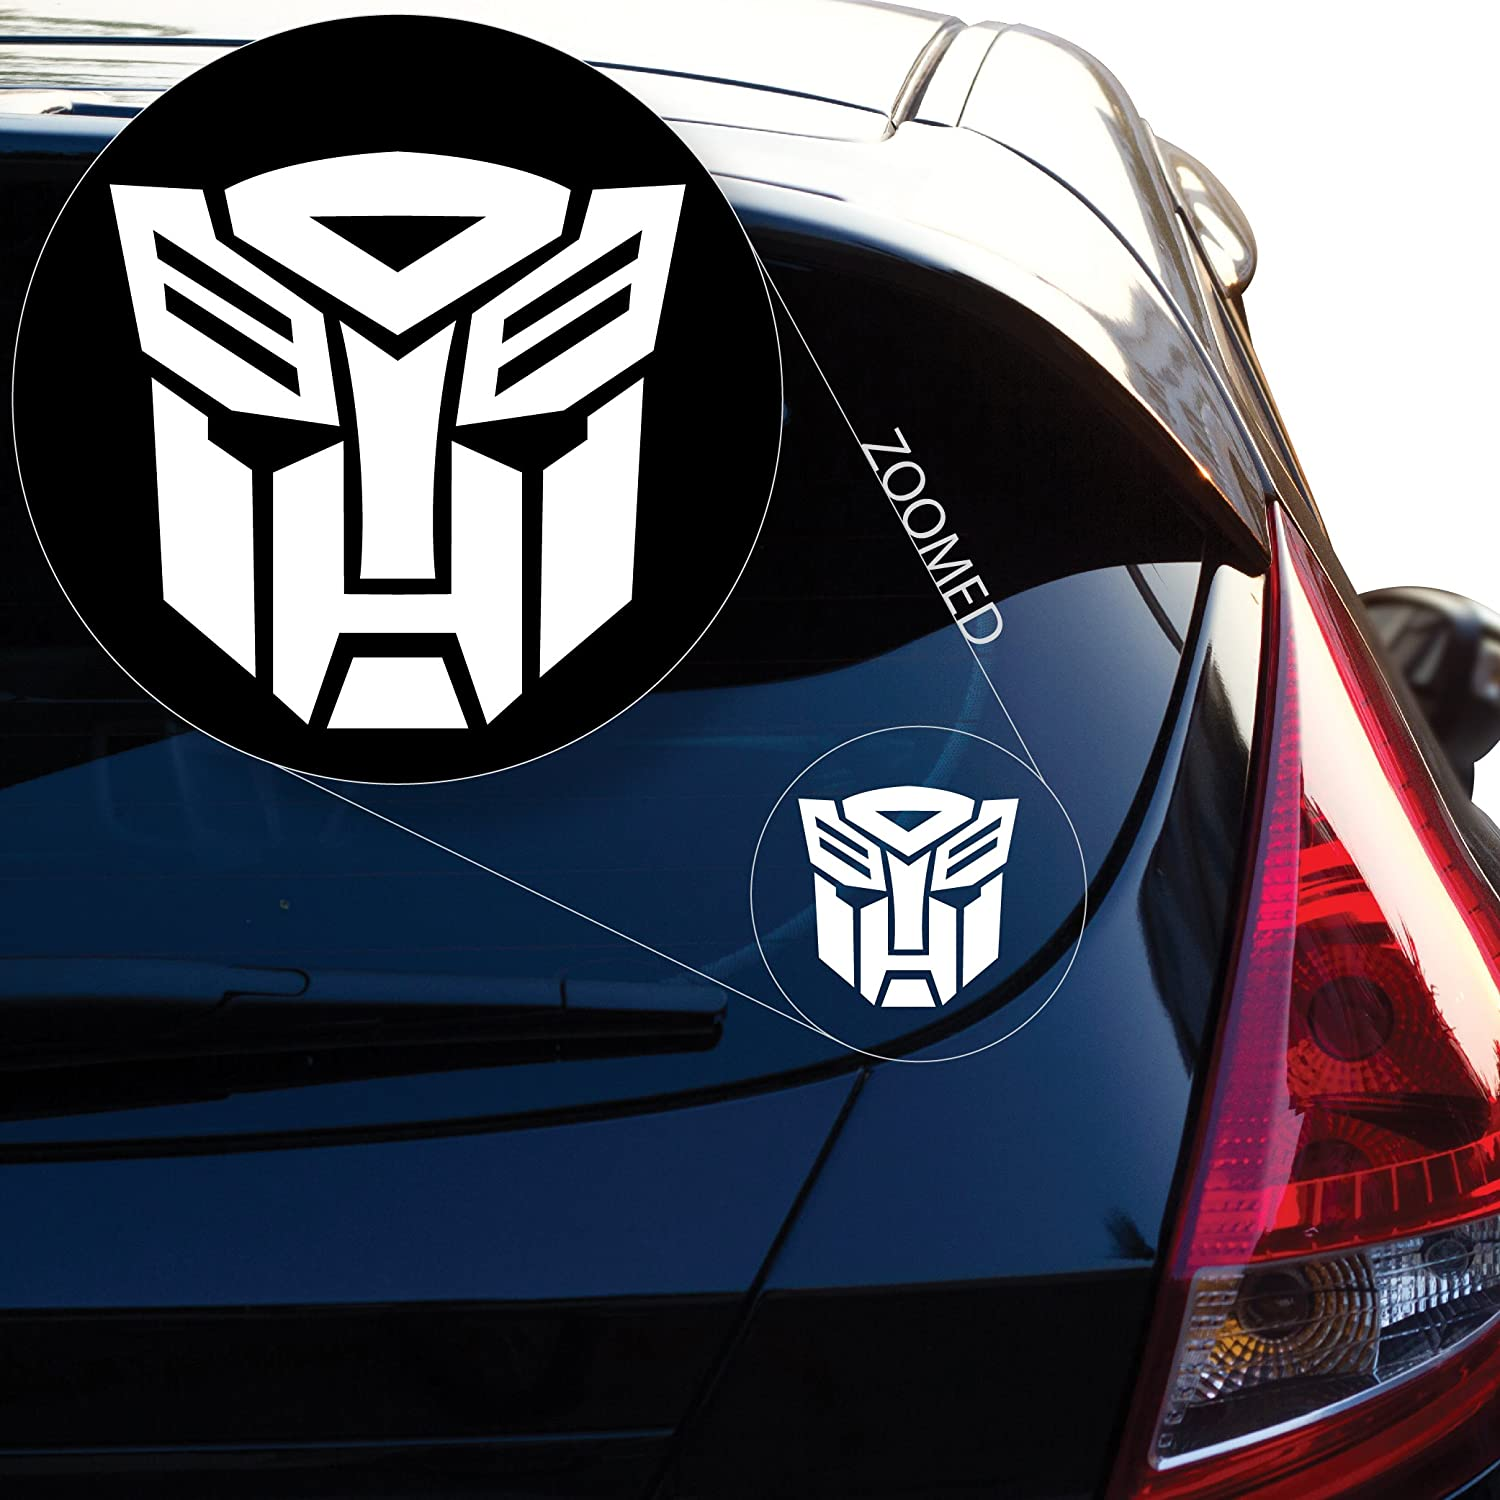 Laptop and More # 544 6 x 6, Red # 544 Yoonek Graphics Autobot inspired Transformer Decal Sticker for Car Window 6 x 6 Laptop and More